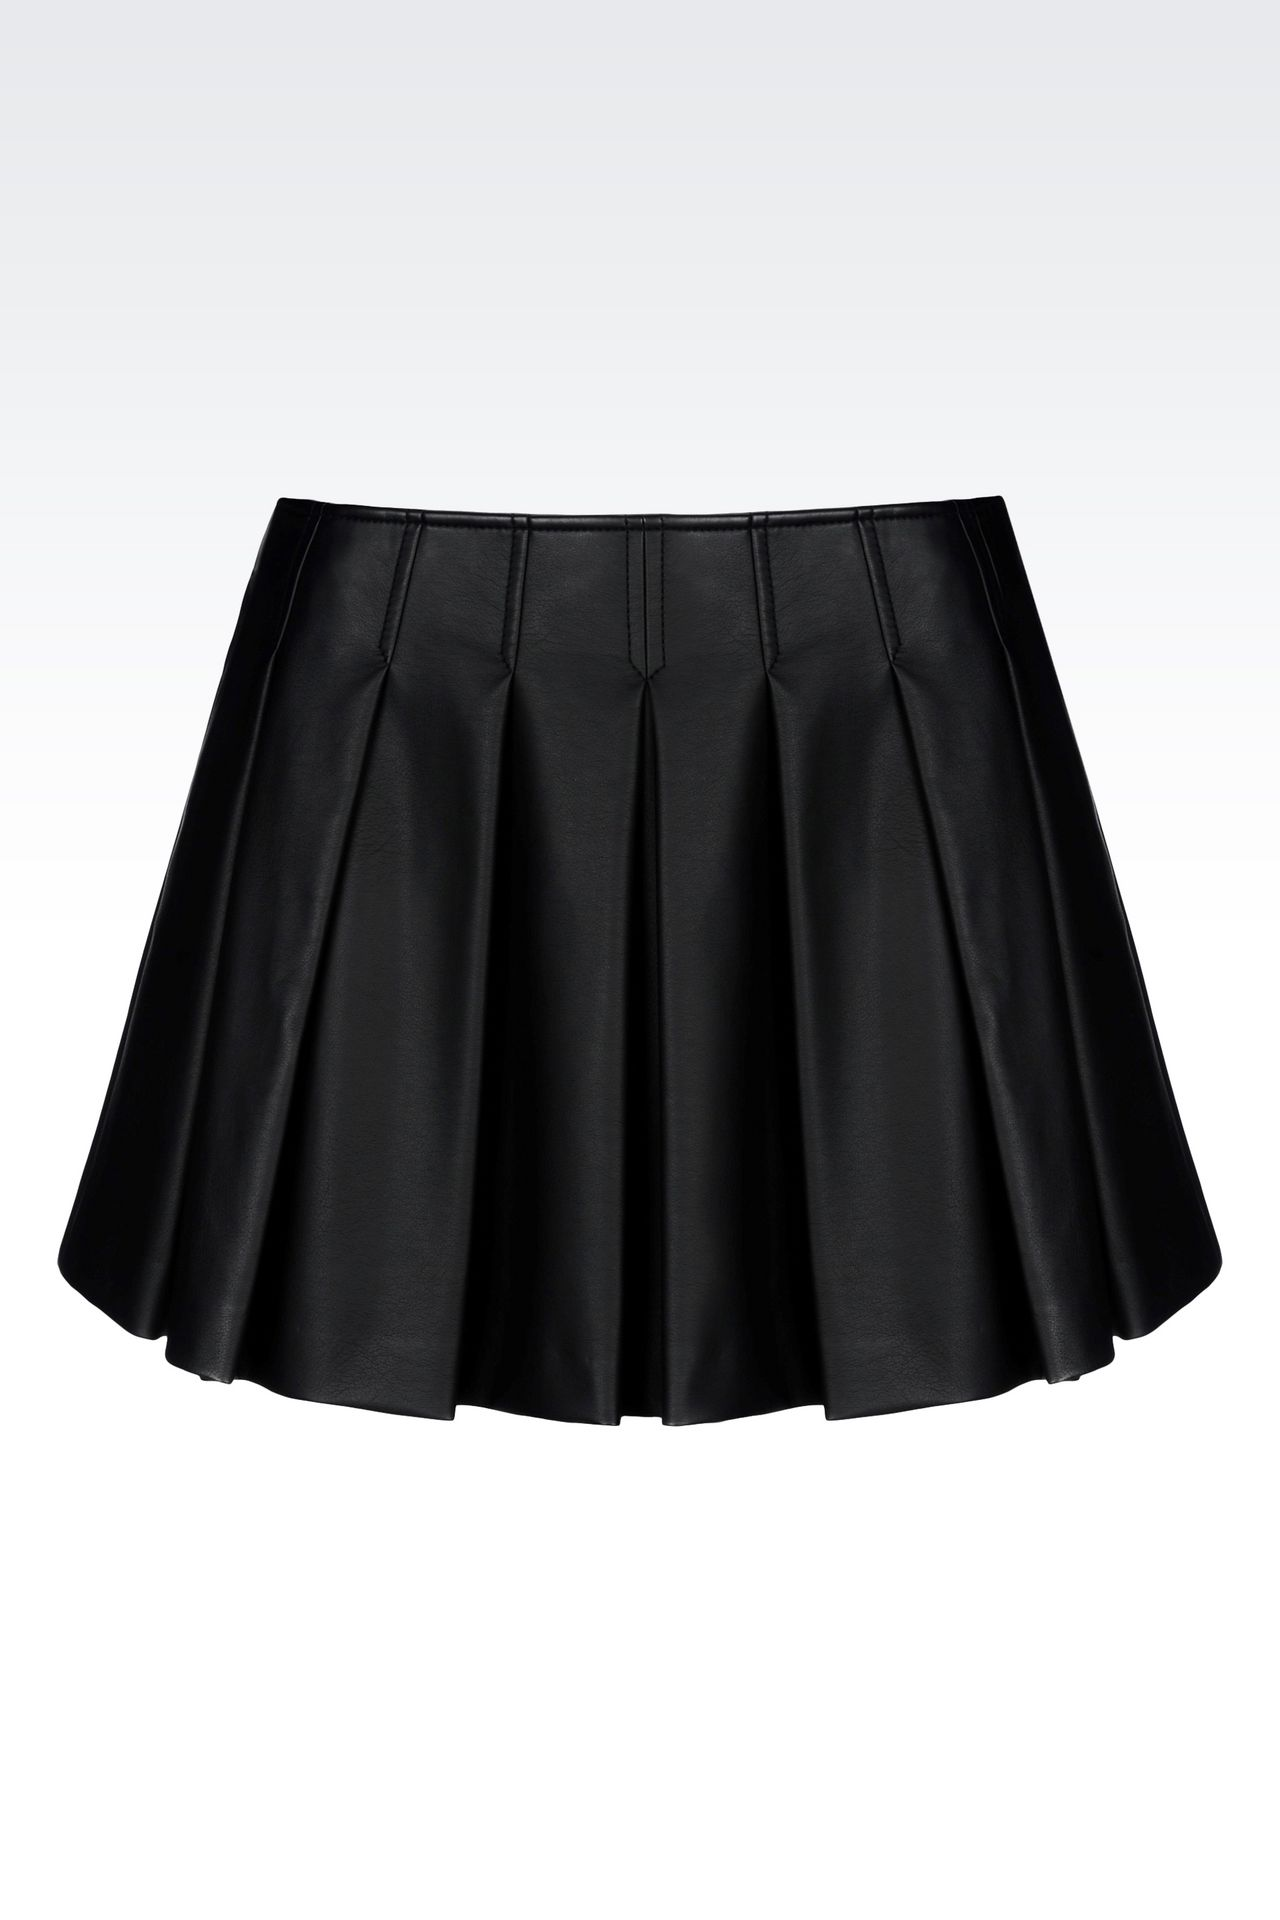 SKIRT IN FAUX LEATHER: Mini skirts Women by Armani - 0